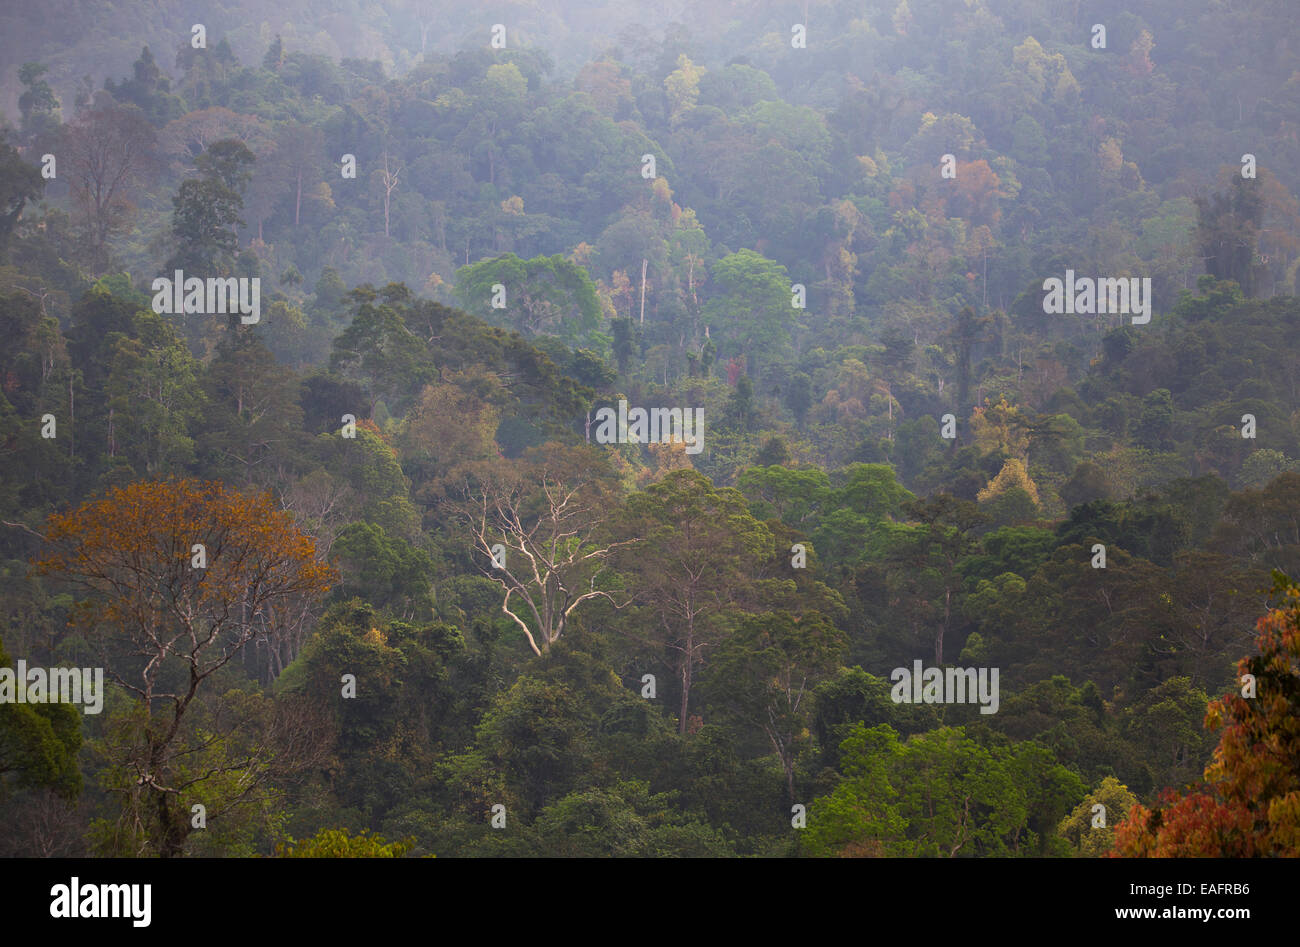 Colorful foliage on trees in pristine tropical rainforest in Taman Negara National Park, Malaysia Stock Photo